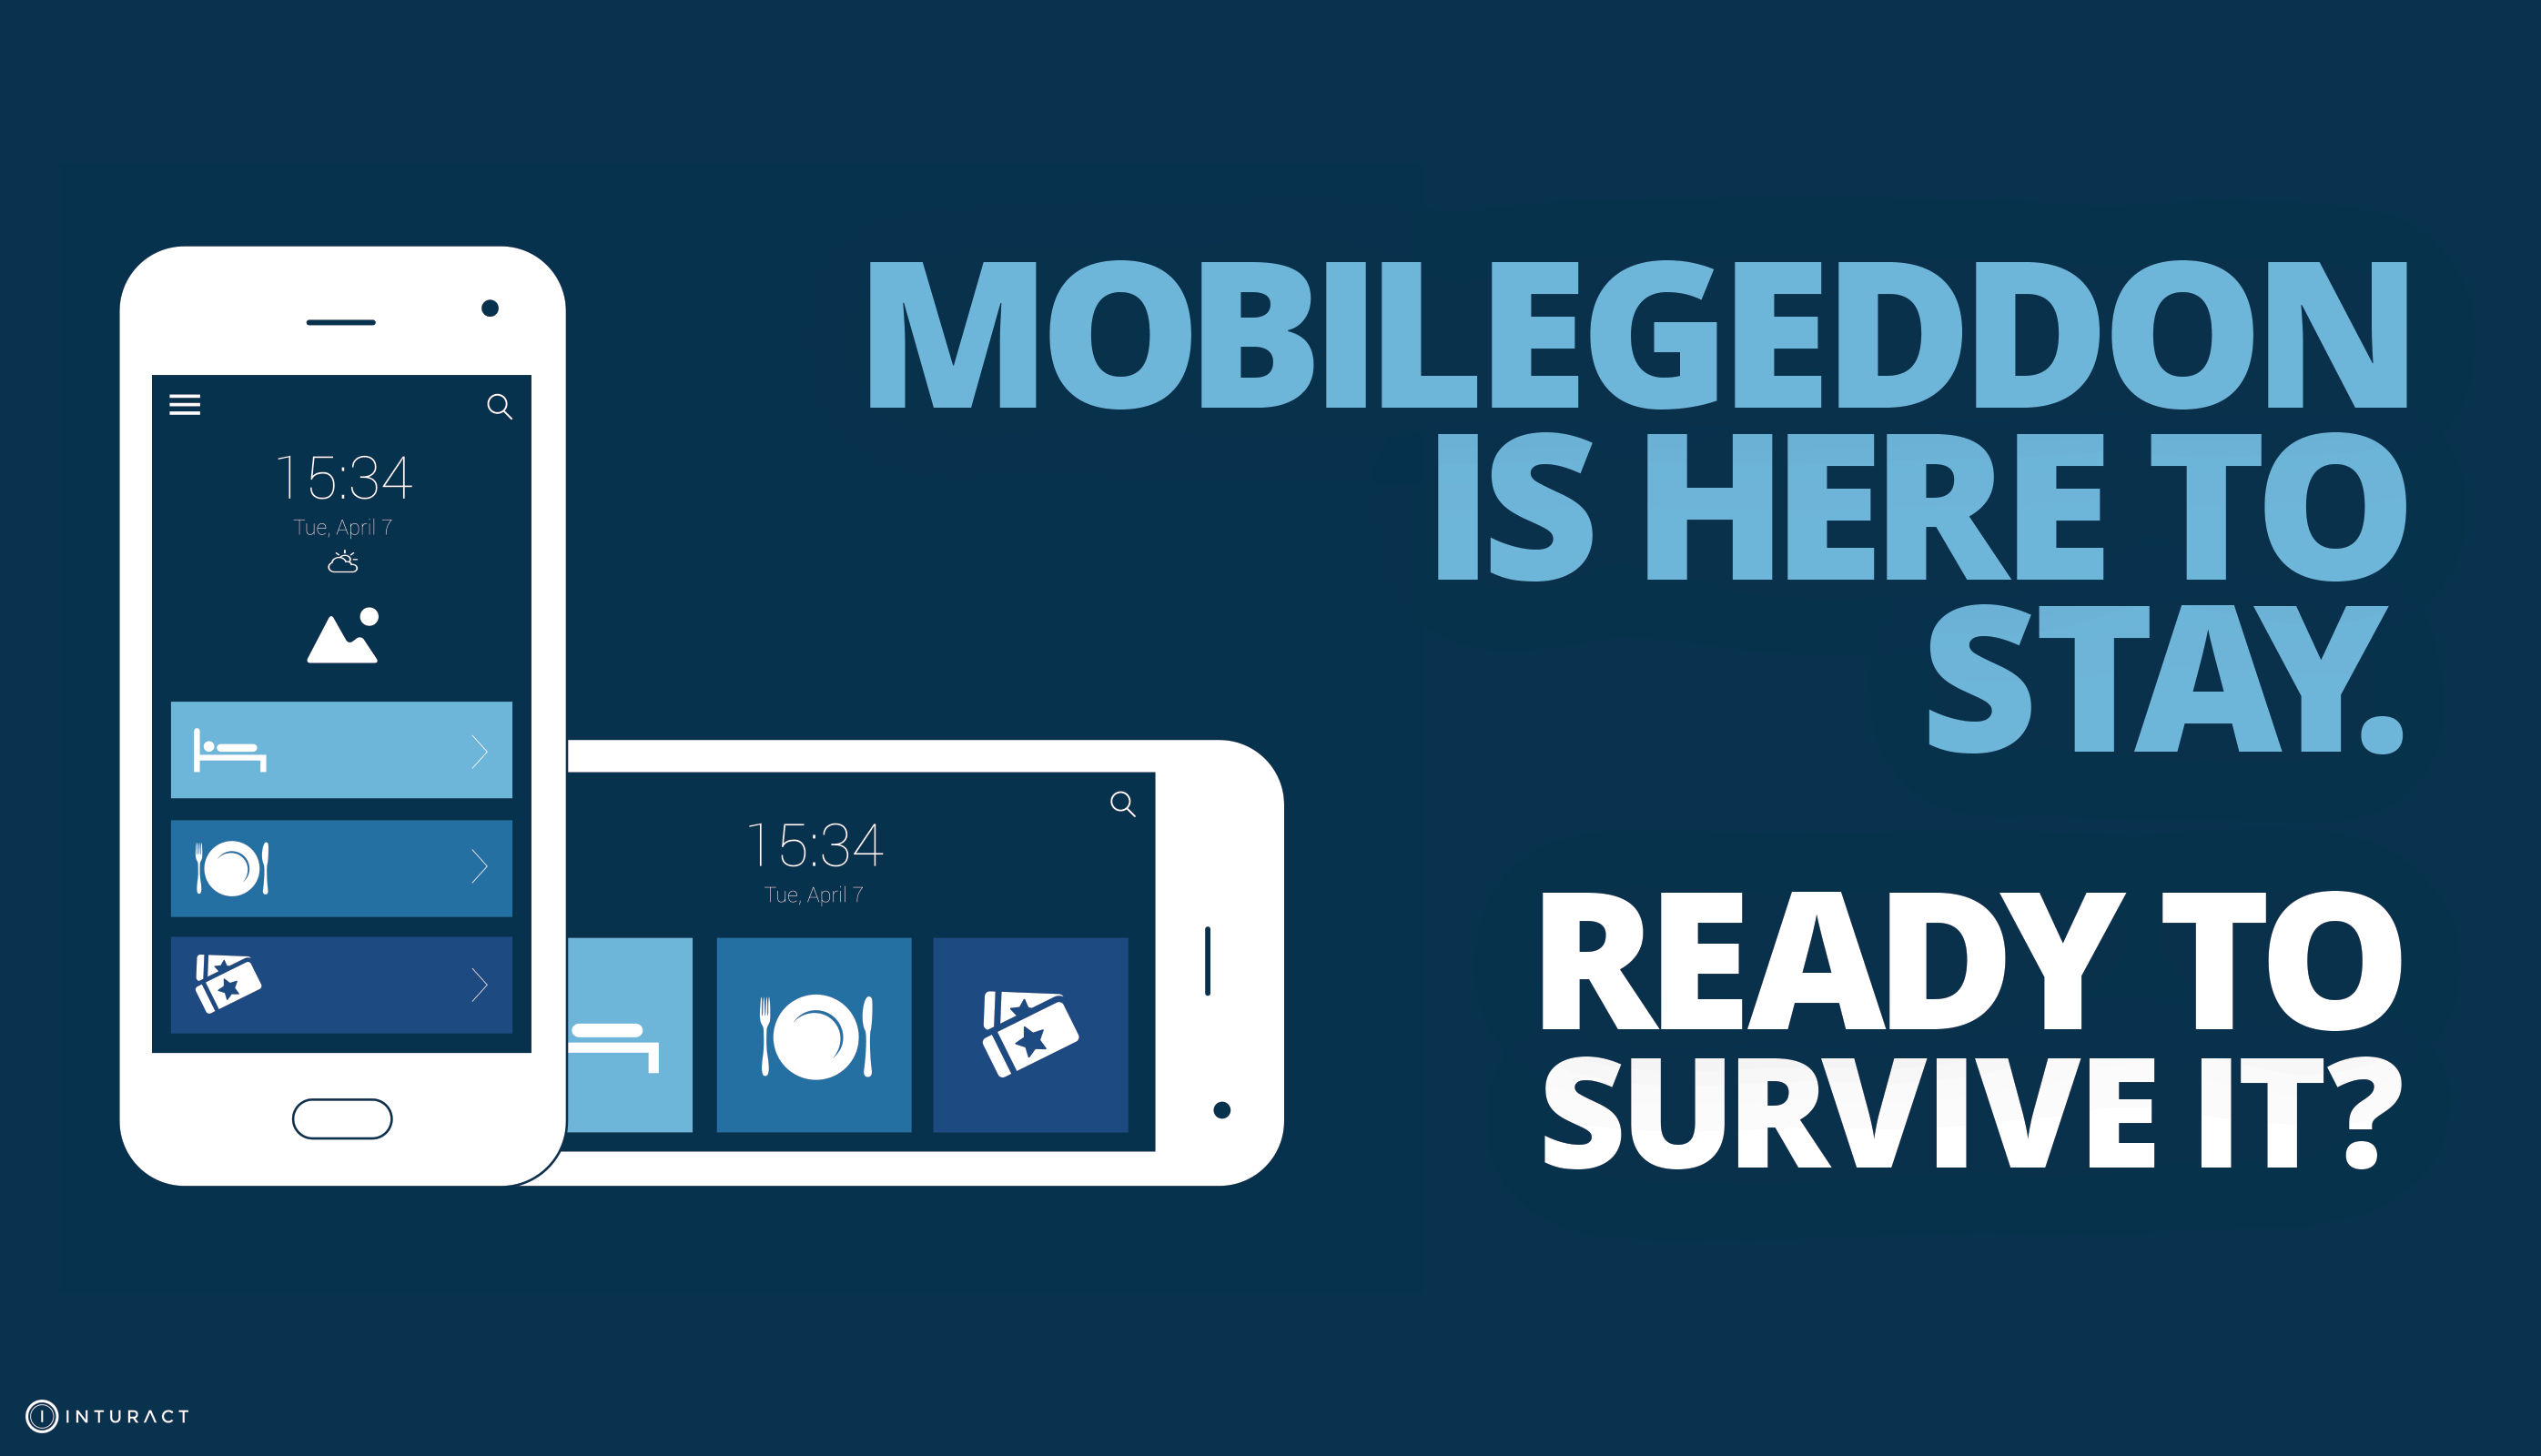 The Mobilegeddon Effect is Here to Stay, Ready to Survive it?